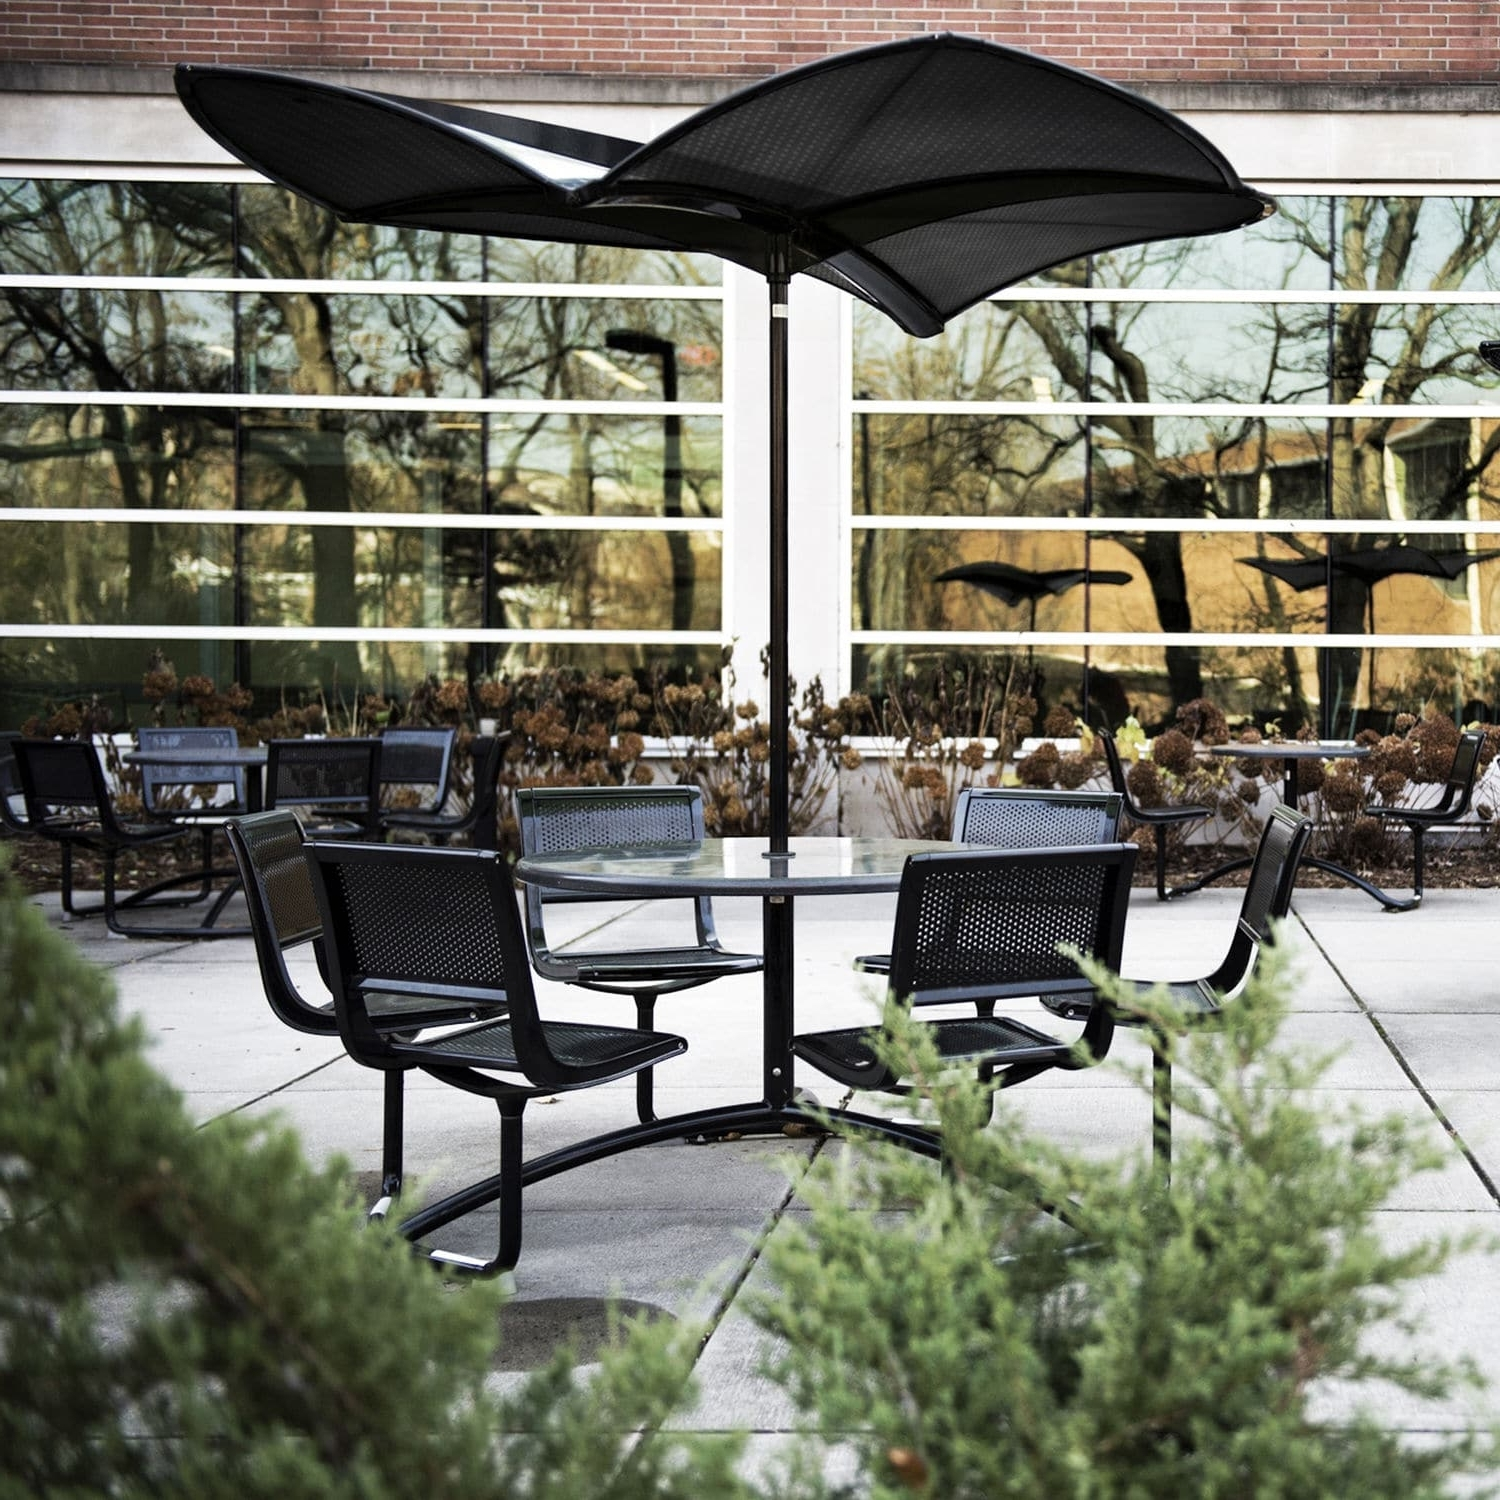 Commercial Patio Umbrellas With Most Recent Commercial Patio Umbrella / Metal – 35 : Shadefrog (View 5 of 20)